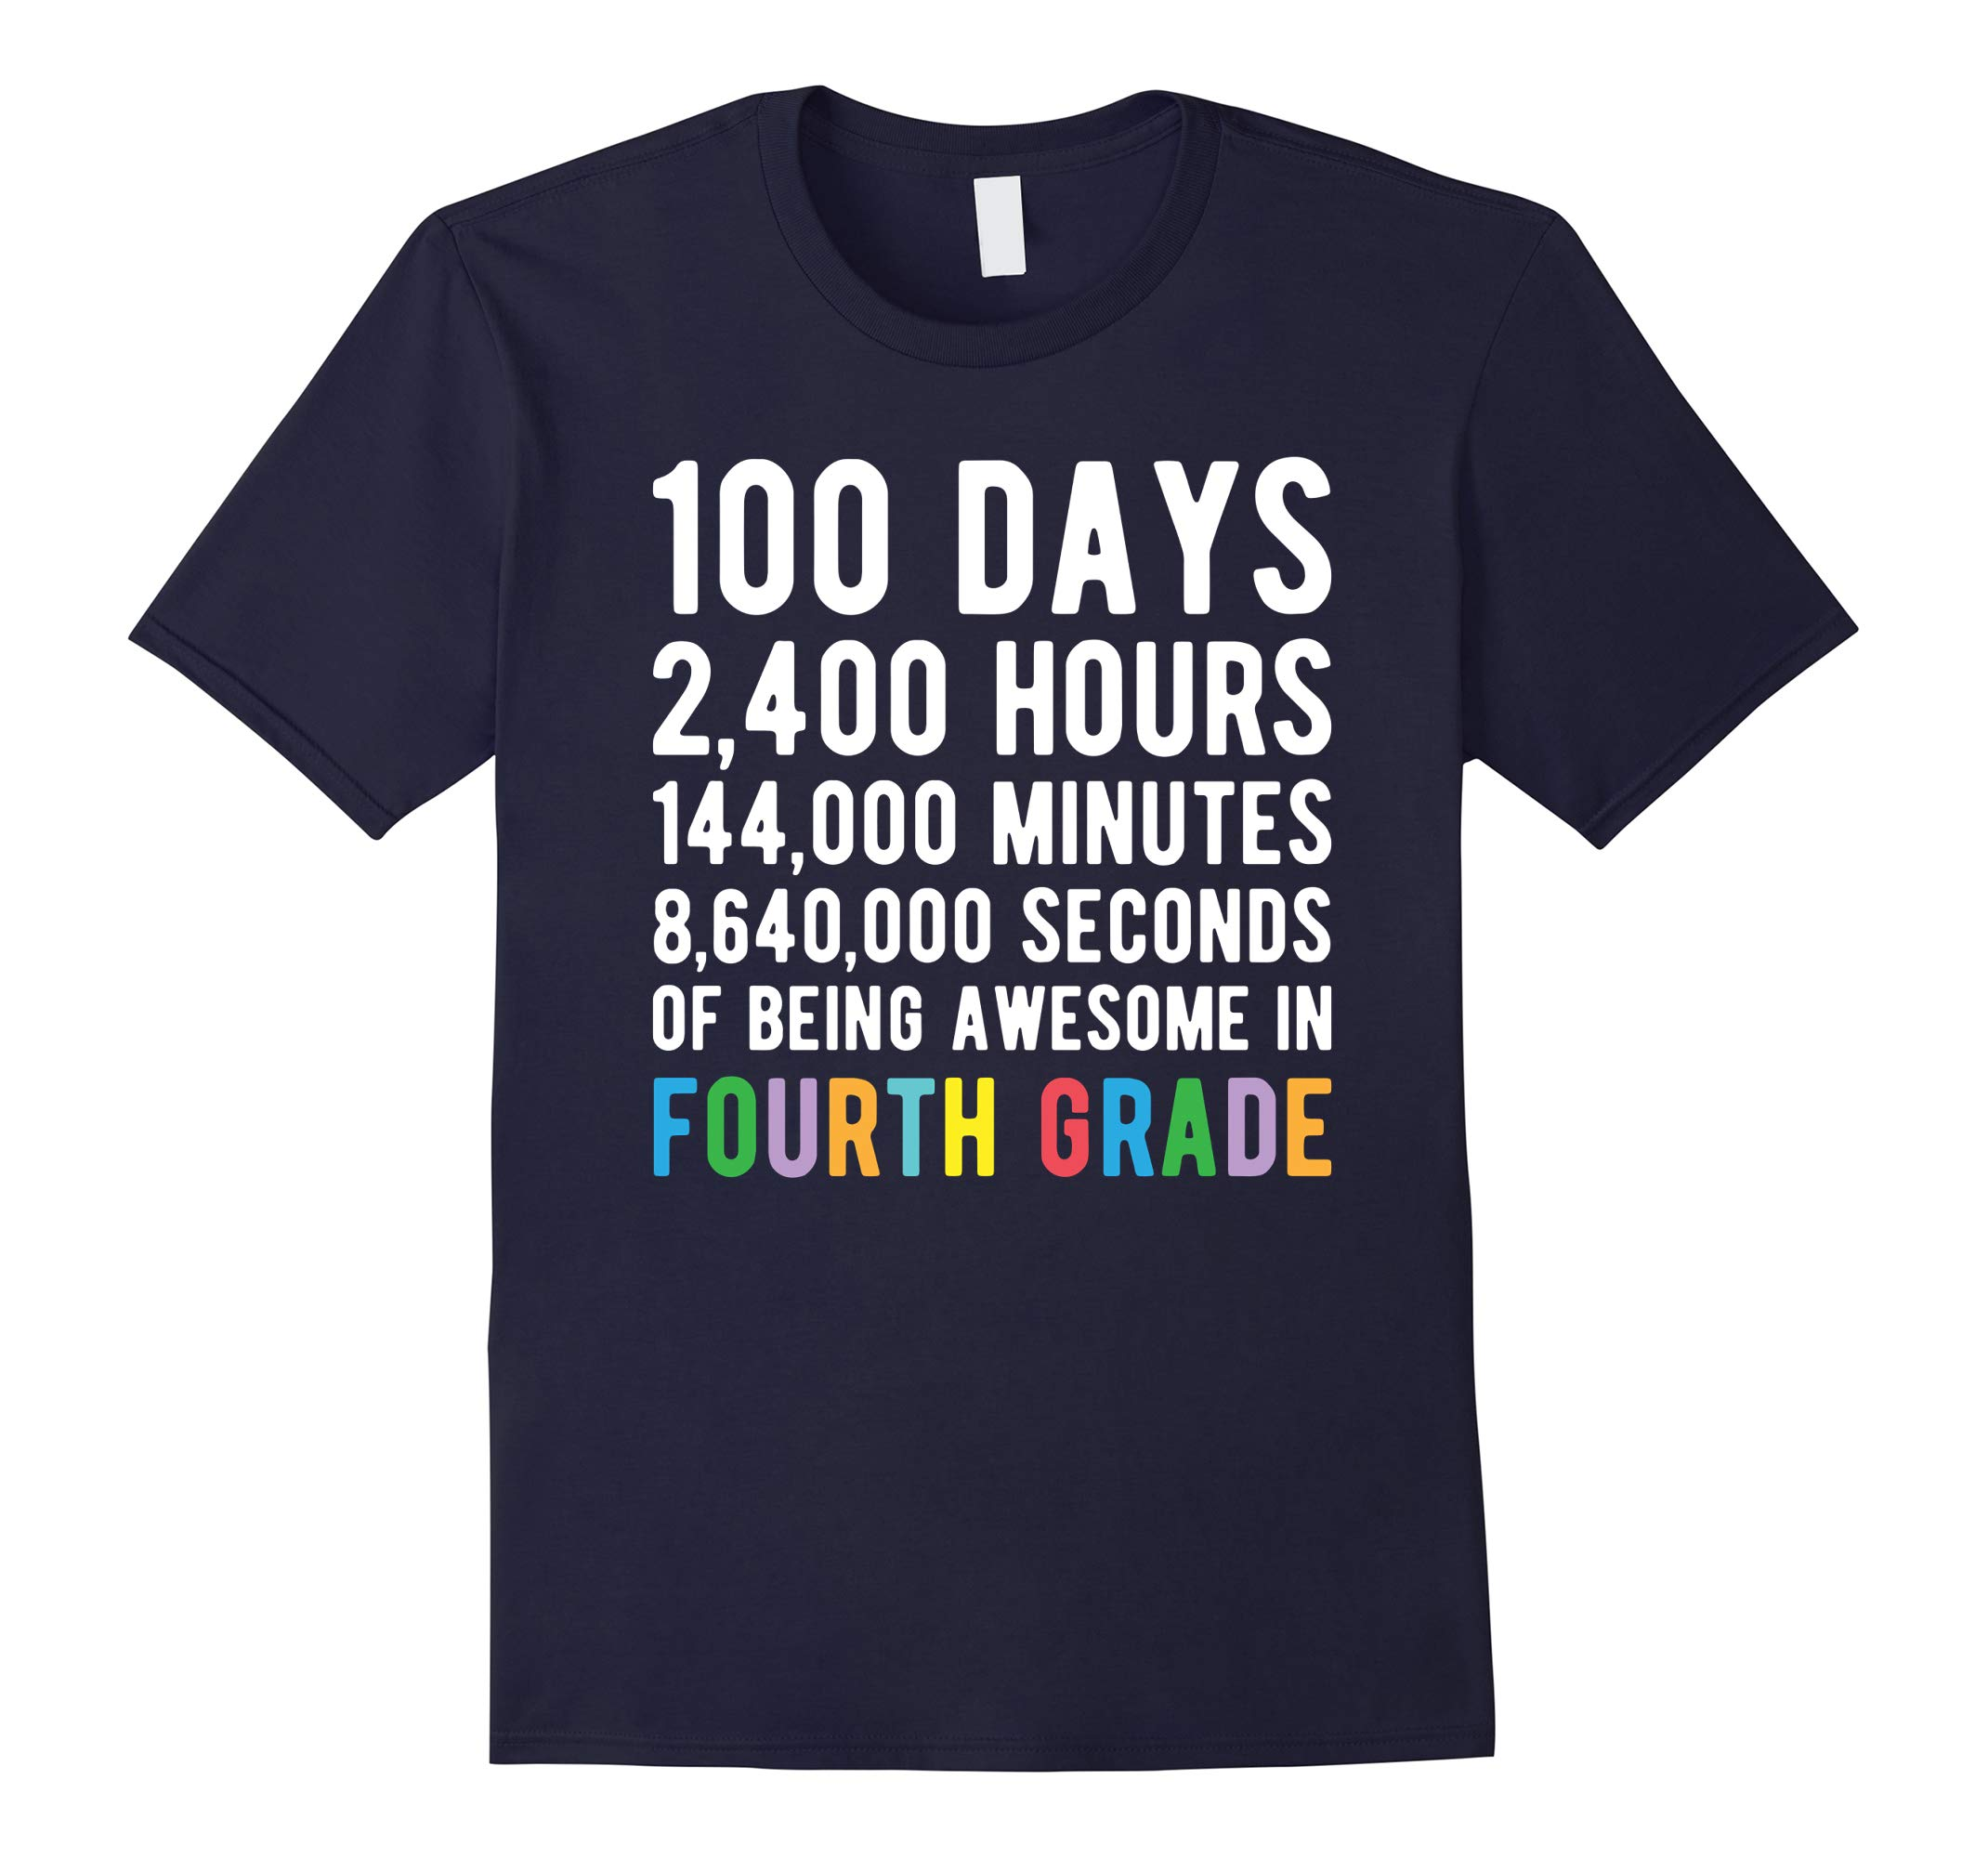 100 Days of School Shirt Fourth Grade 100 Day Countdown-RT